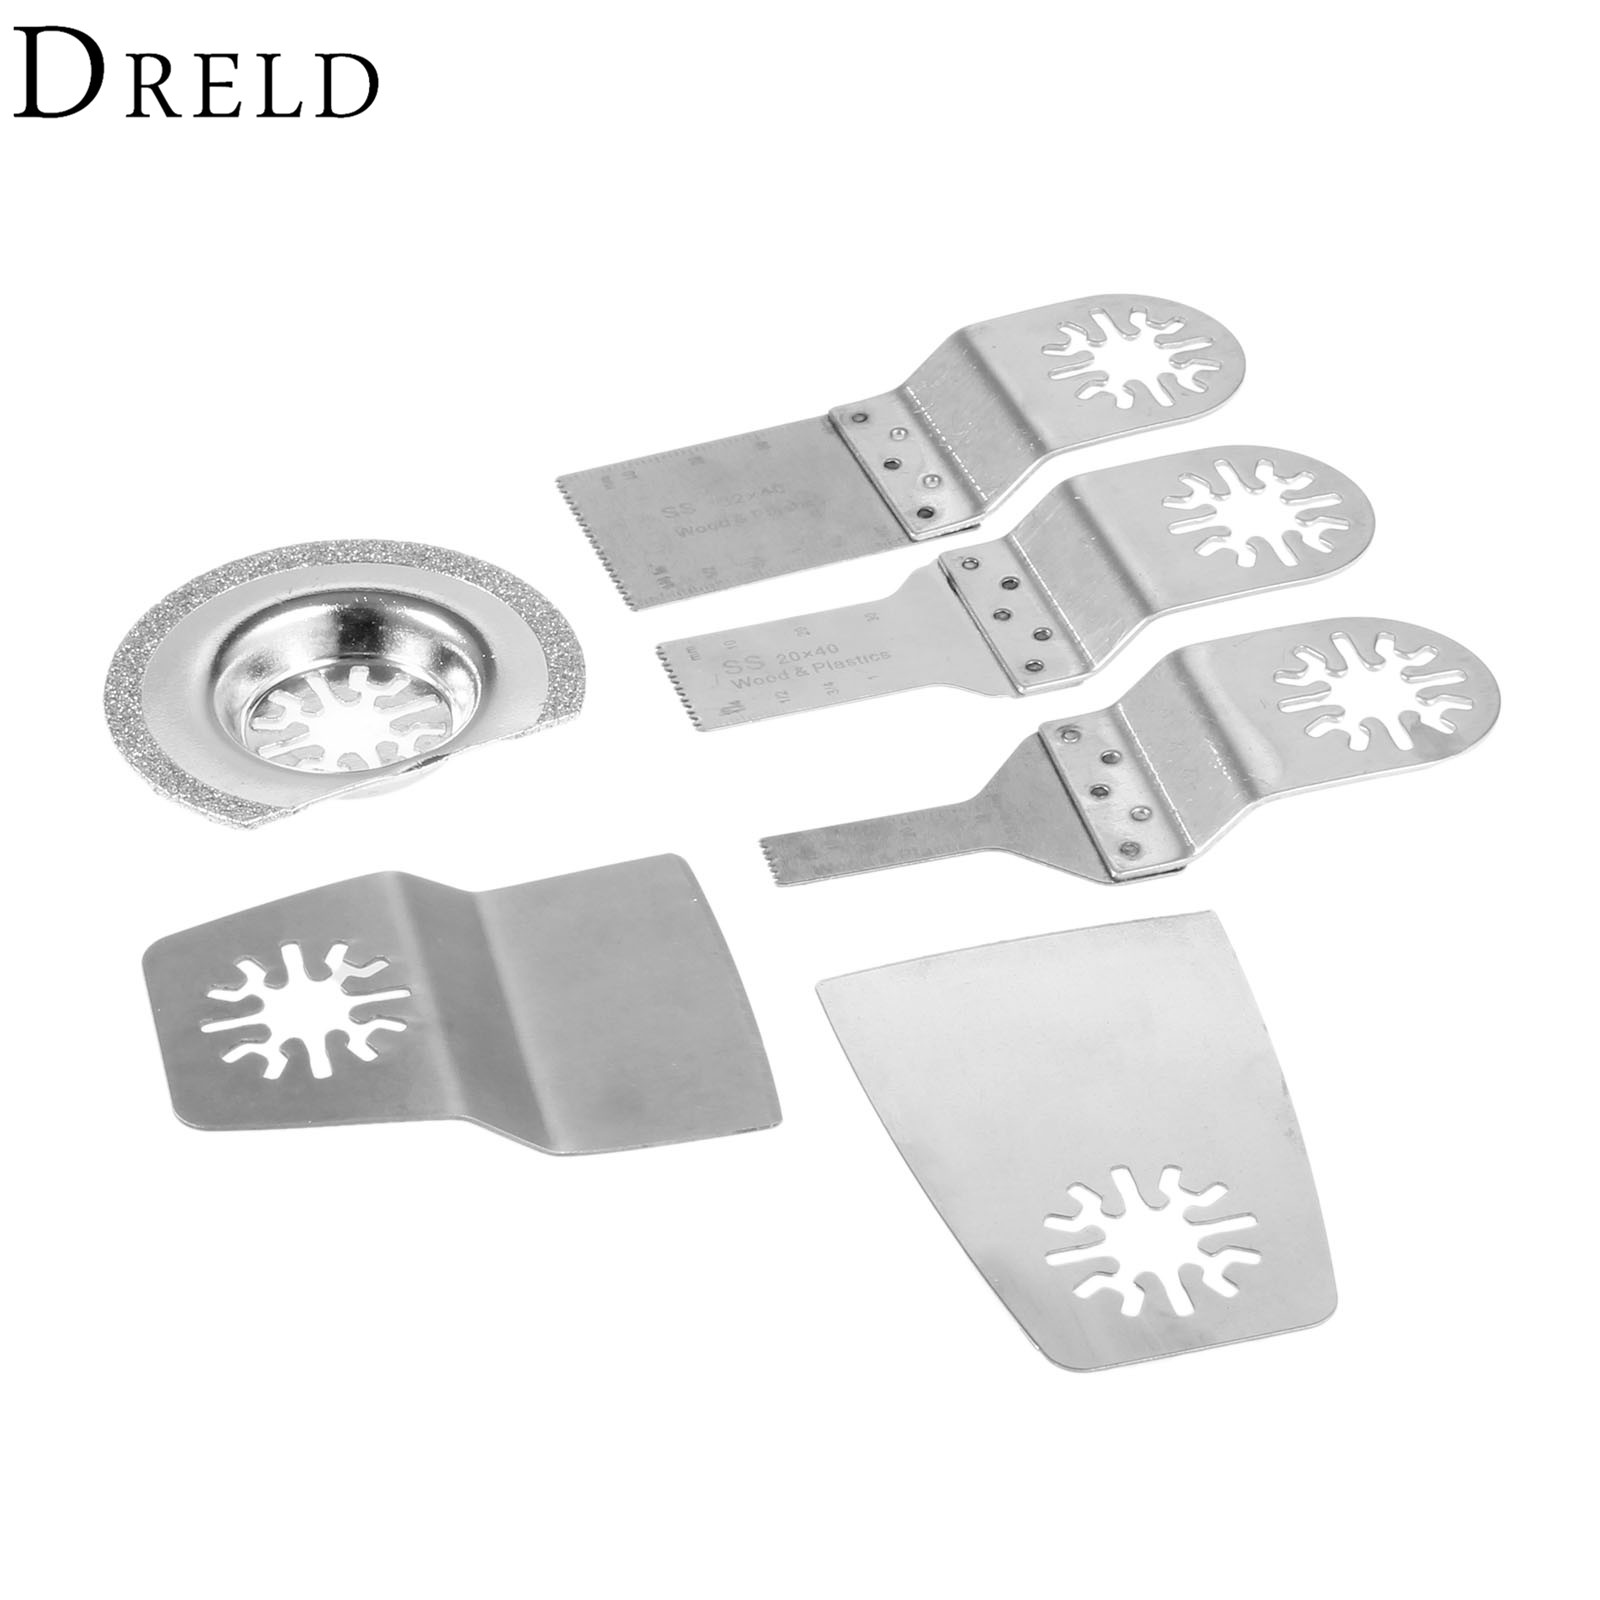 DRELD 6Pcs Oscillating Multi Tool Kit SS Saw Blade Set Wood Cutting For Renovator Power Tool Bosch Fein Dremel Multimaster TCH